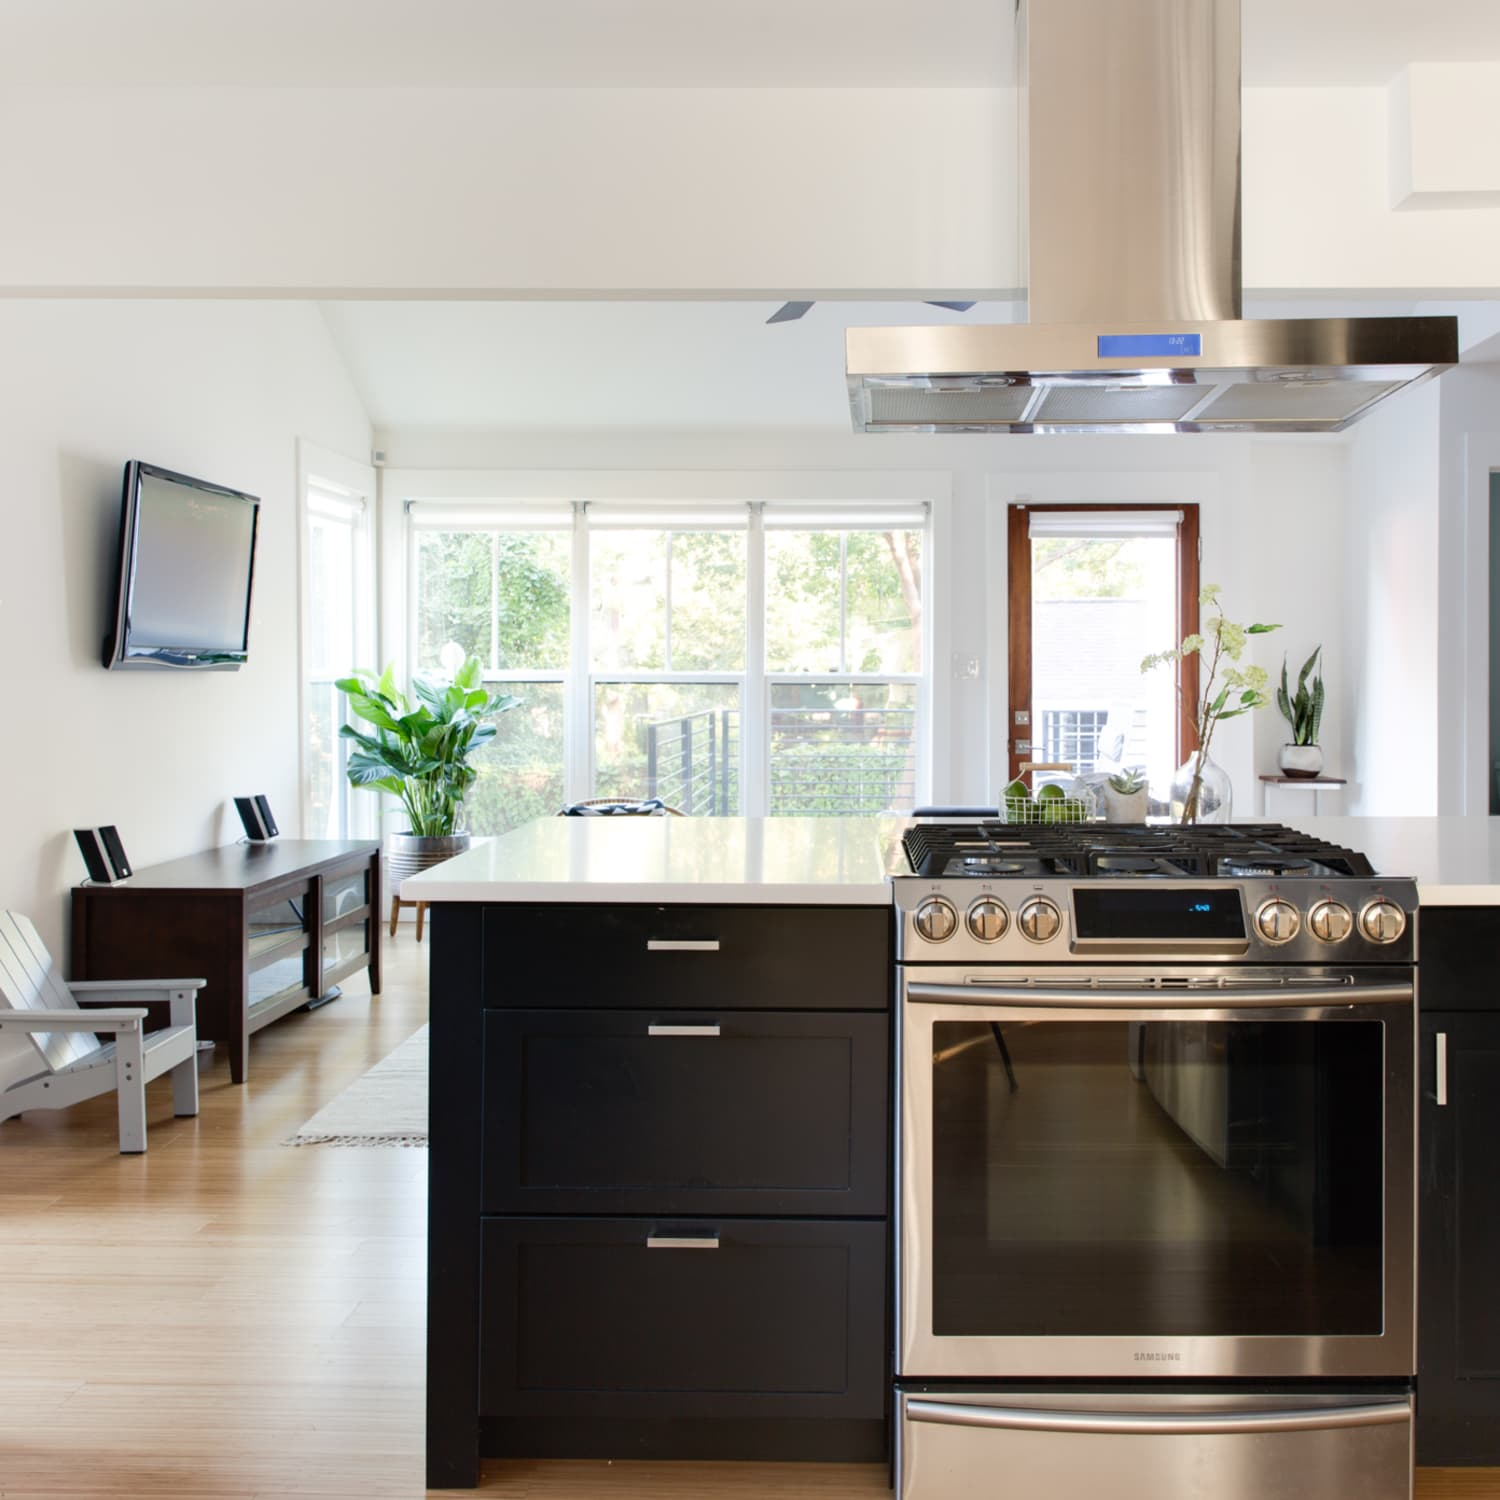 - Buying A New Kitchen Range? Read This First Apartment Therapy